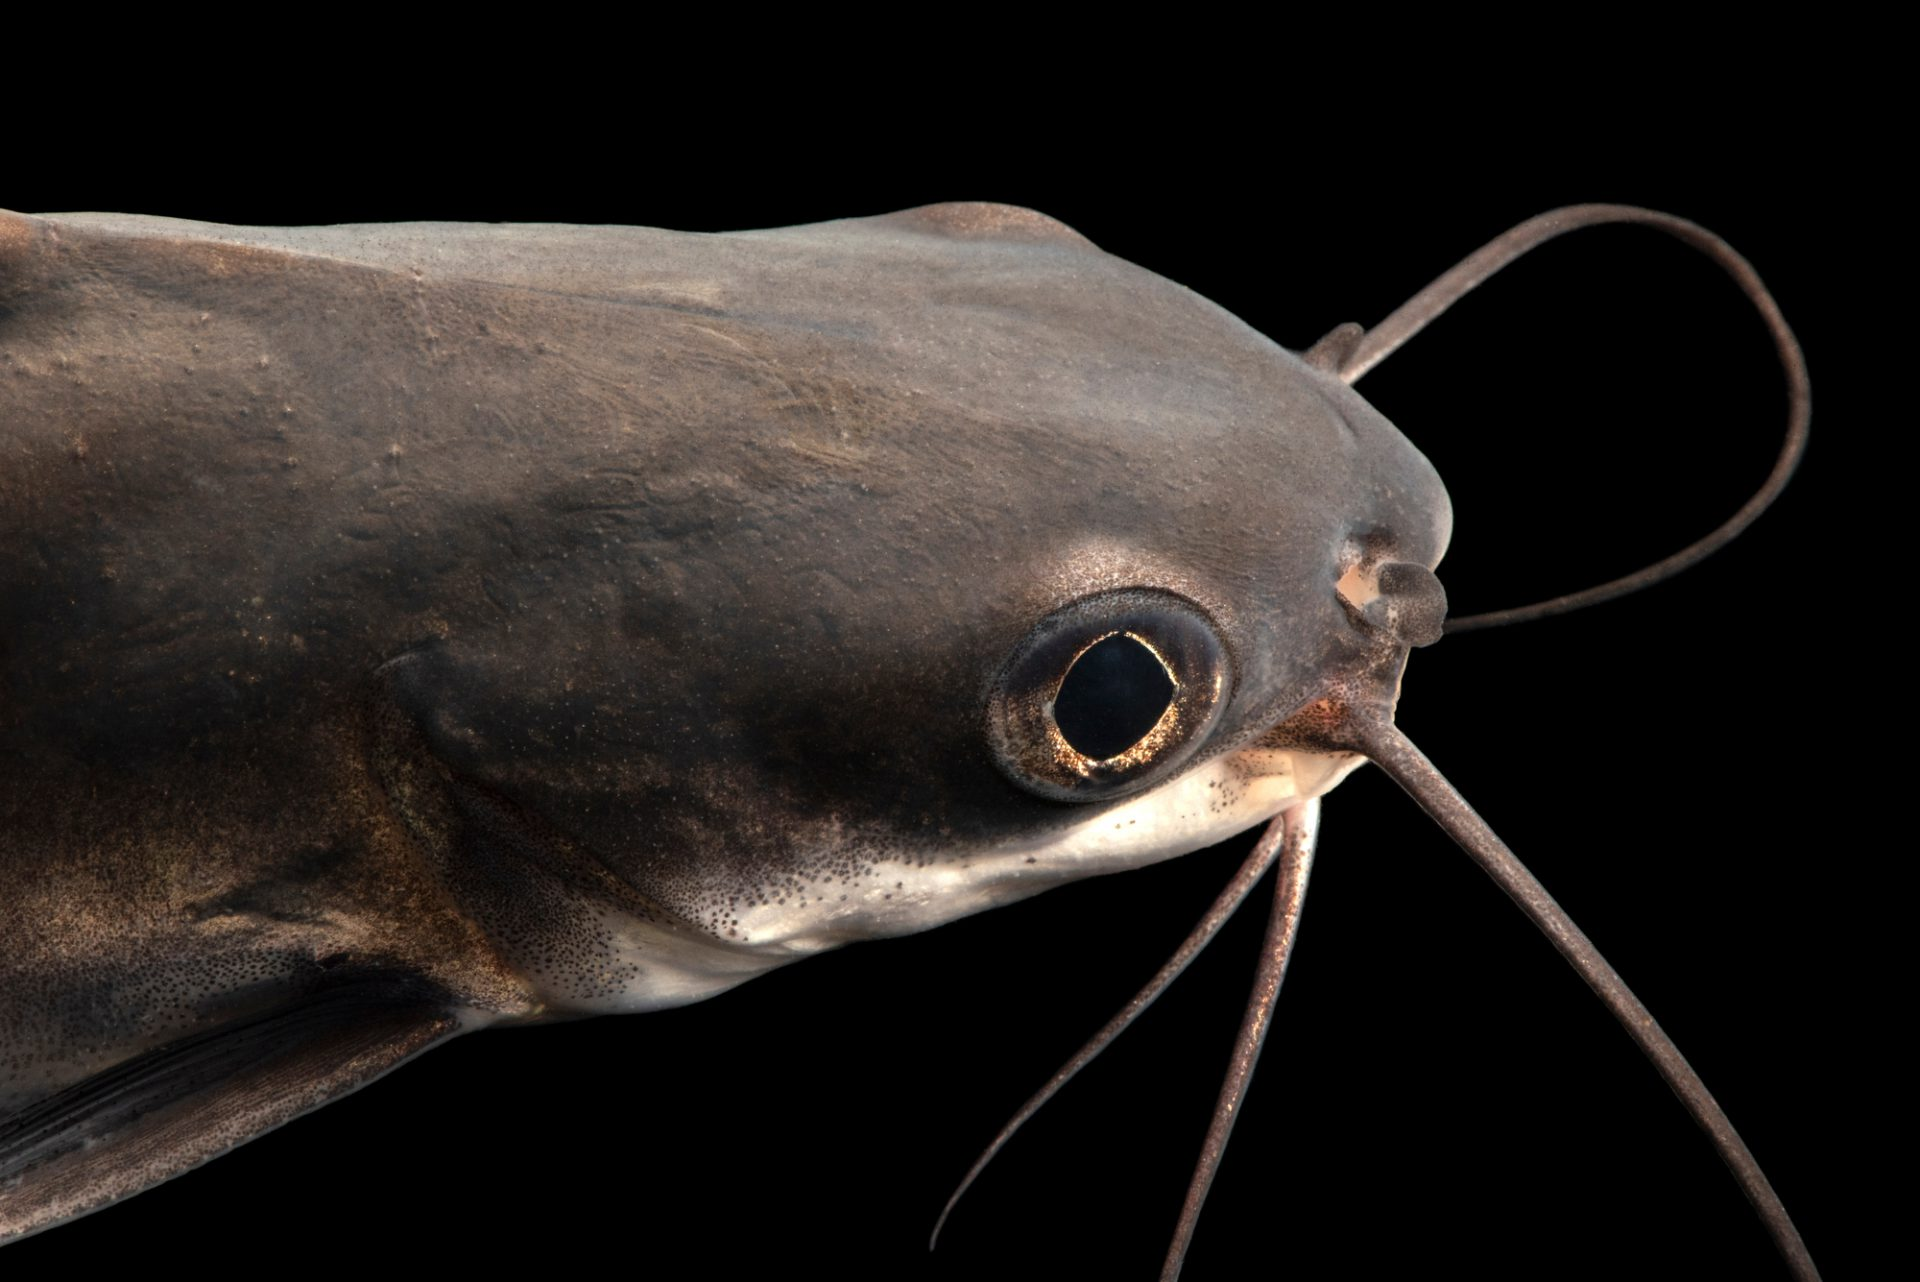 Photo: Highfin catdfish (Neoarius berneyi) at the Freshwater Ecology and Marine Biology Dept. at Templestowe College.